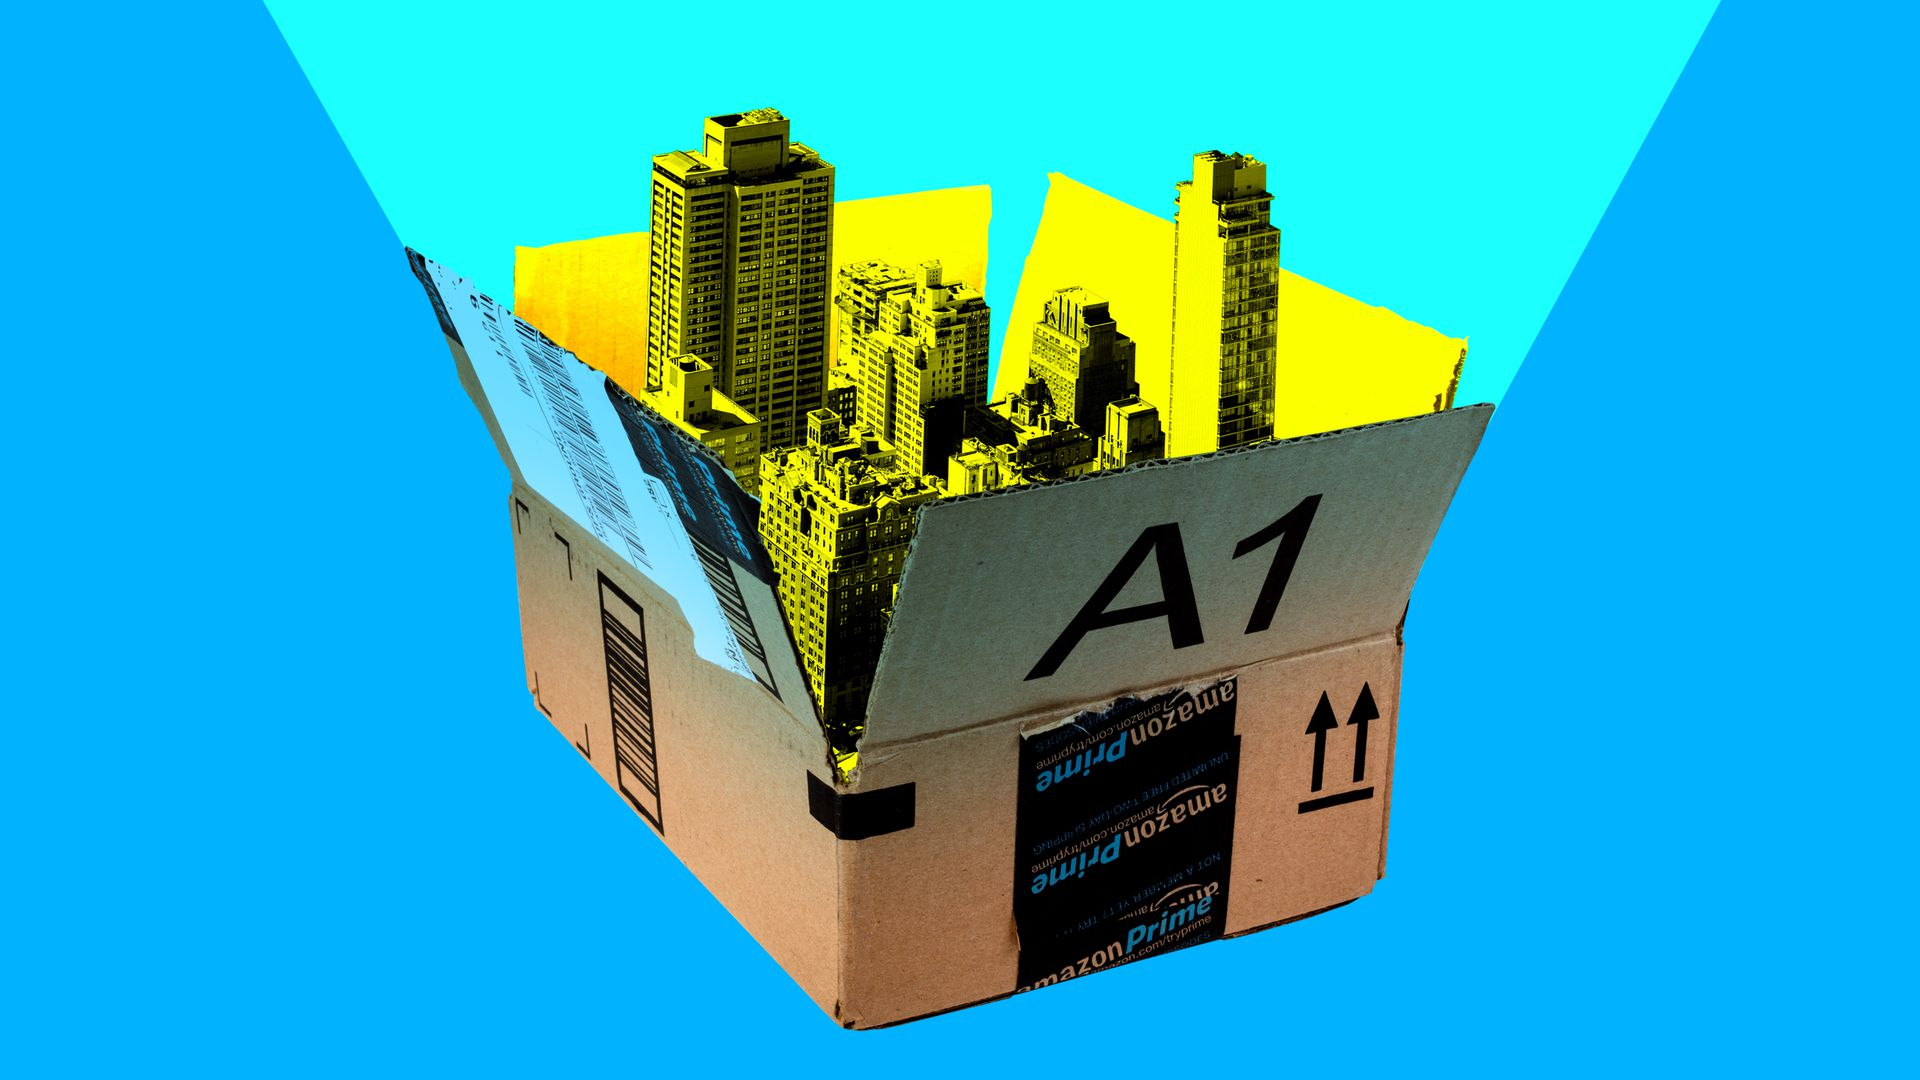 In this illustration, New York city skyscrapers peek out of an open Amazon box